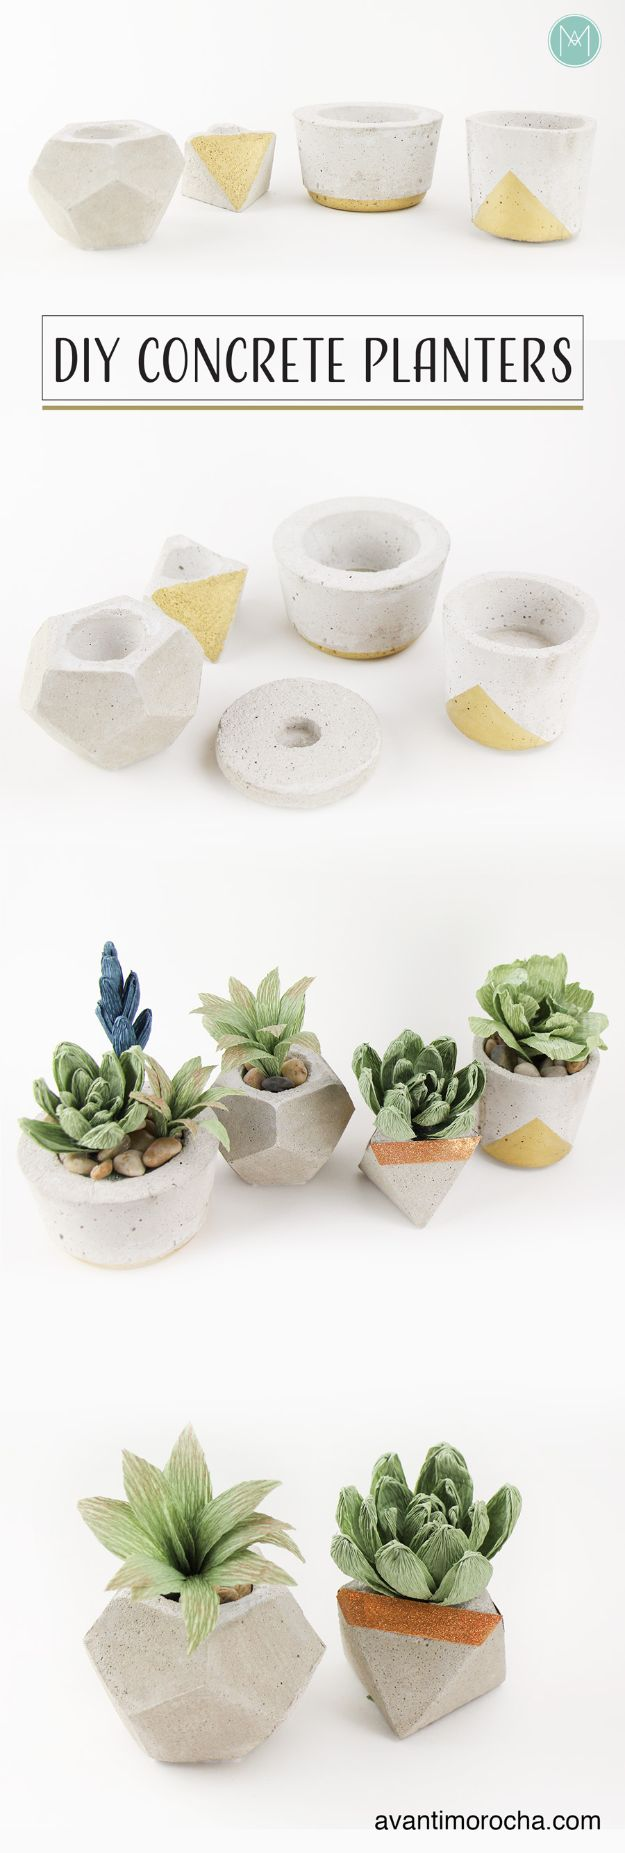 DIY Projects With Concrete - DIY Concrete Planters - Easy Home Decor and Cheap Crafts Made With Cement - Ideas for DIY Christmas Gifts, Outdoor Decorations